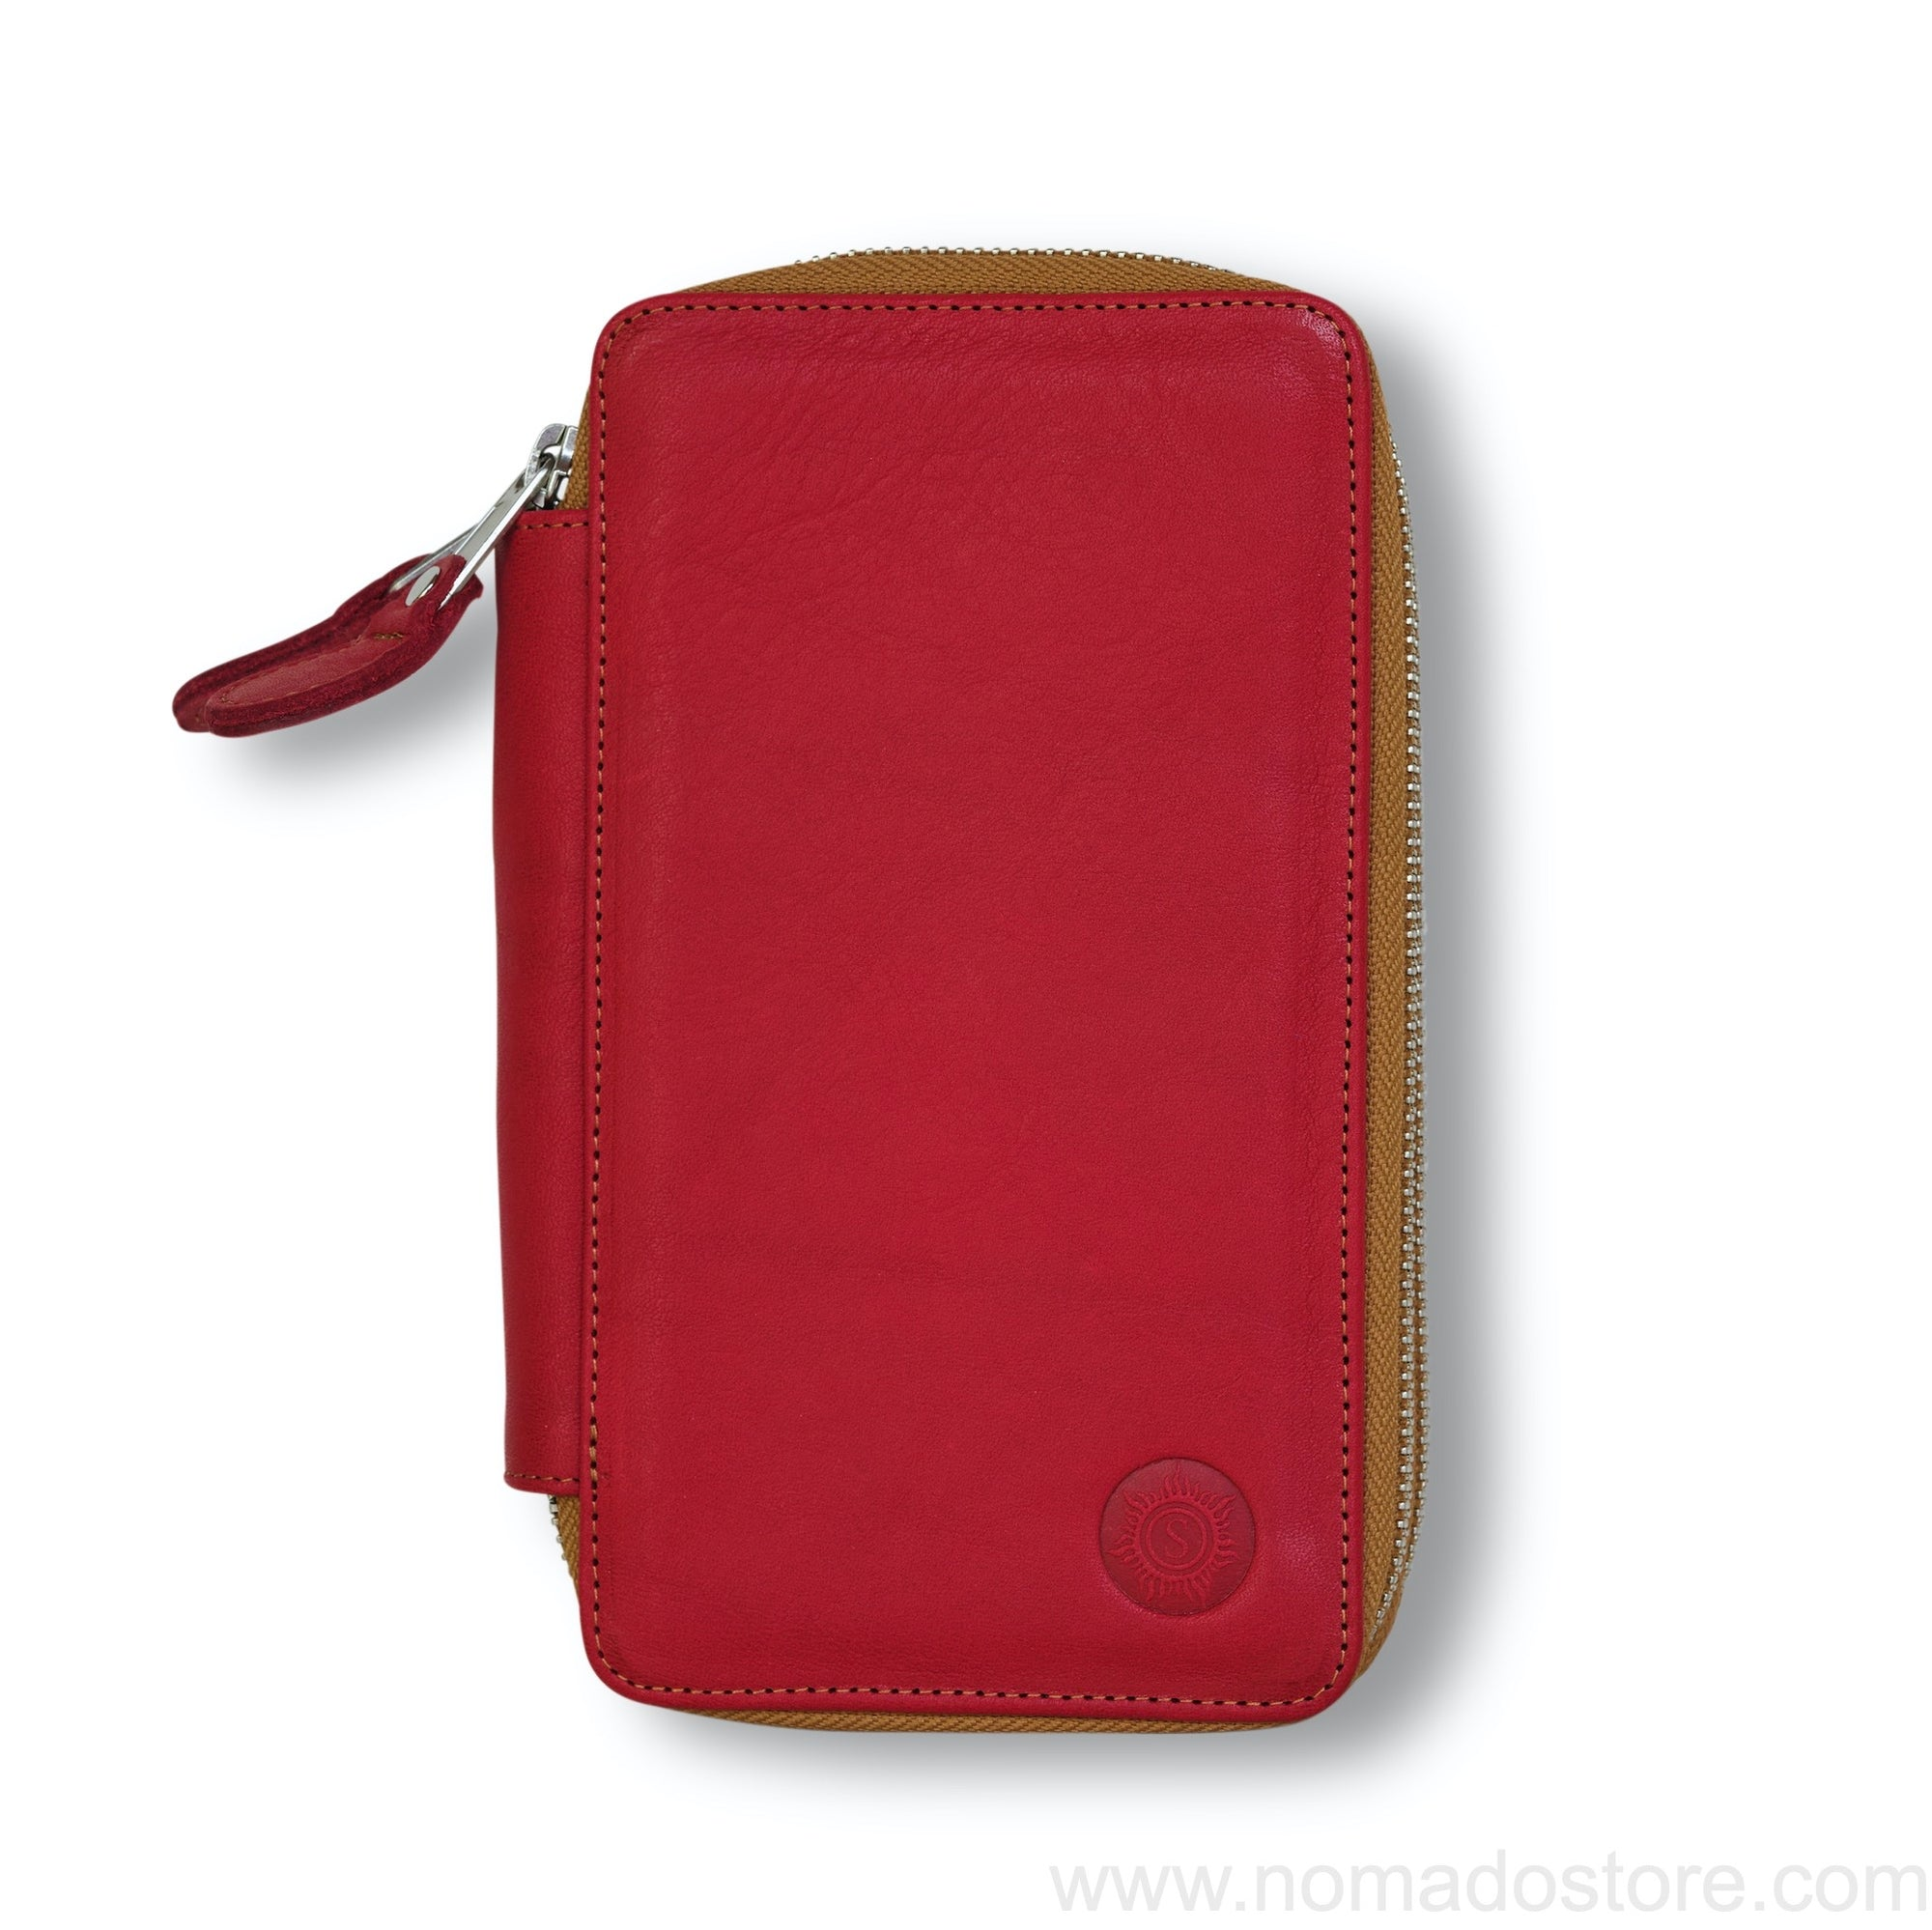 Sonnenleder Bosse Pencil Case (red)